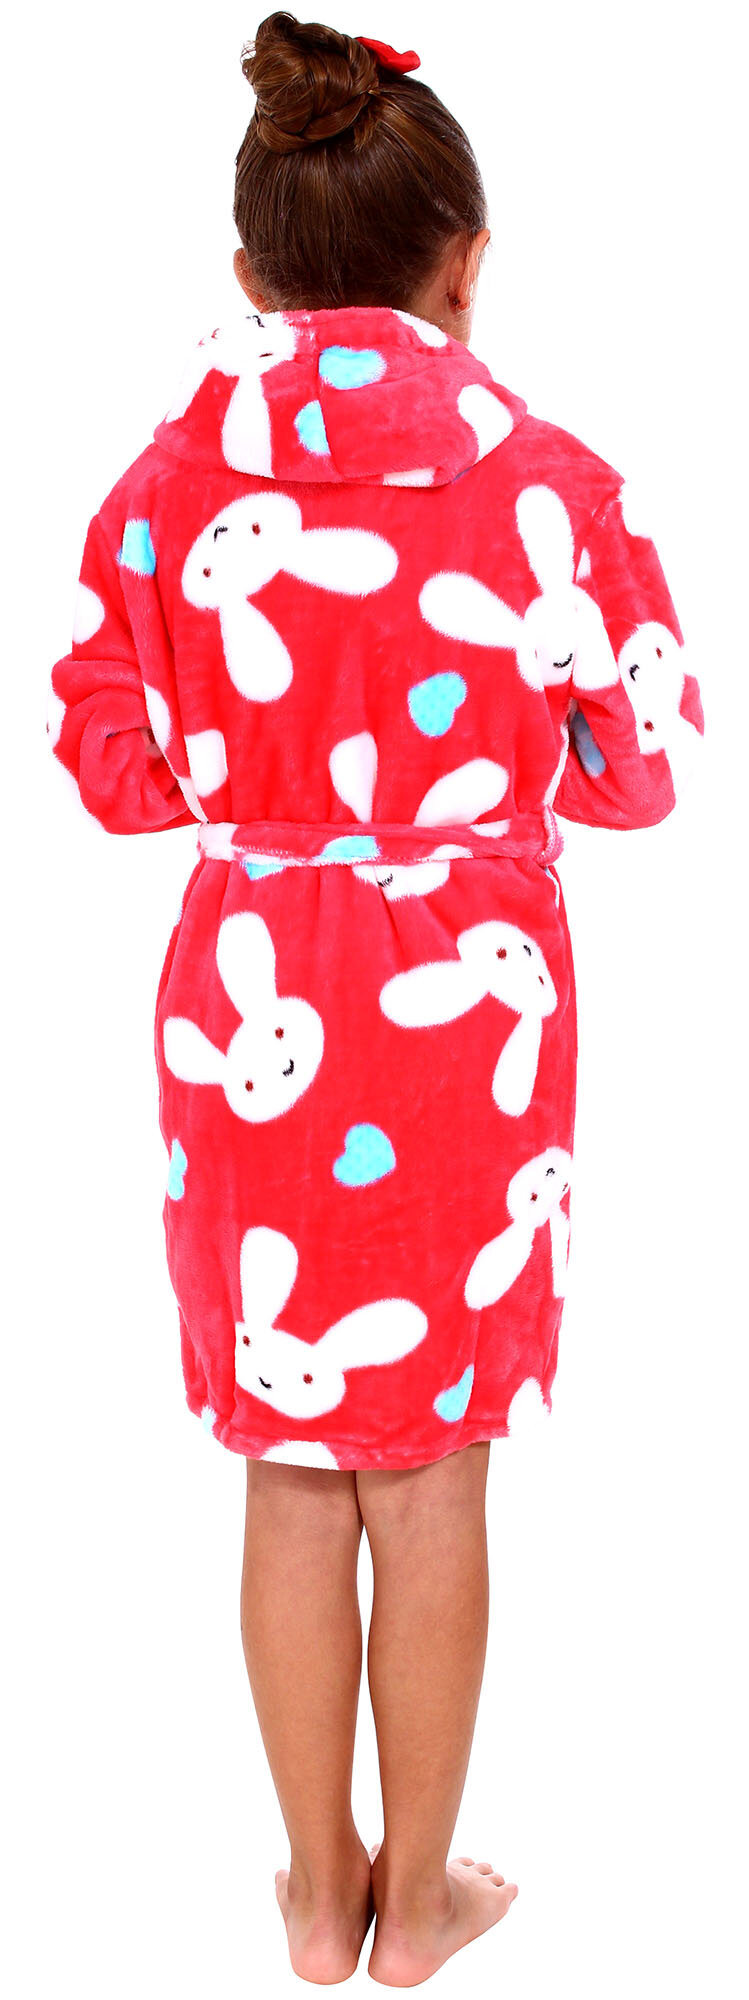 545c631963 Zoomie Kids Geurie Children s Bunny Print Plush Bathrobe